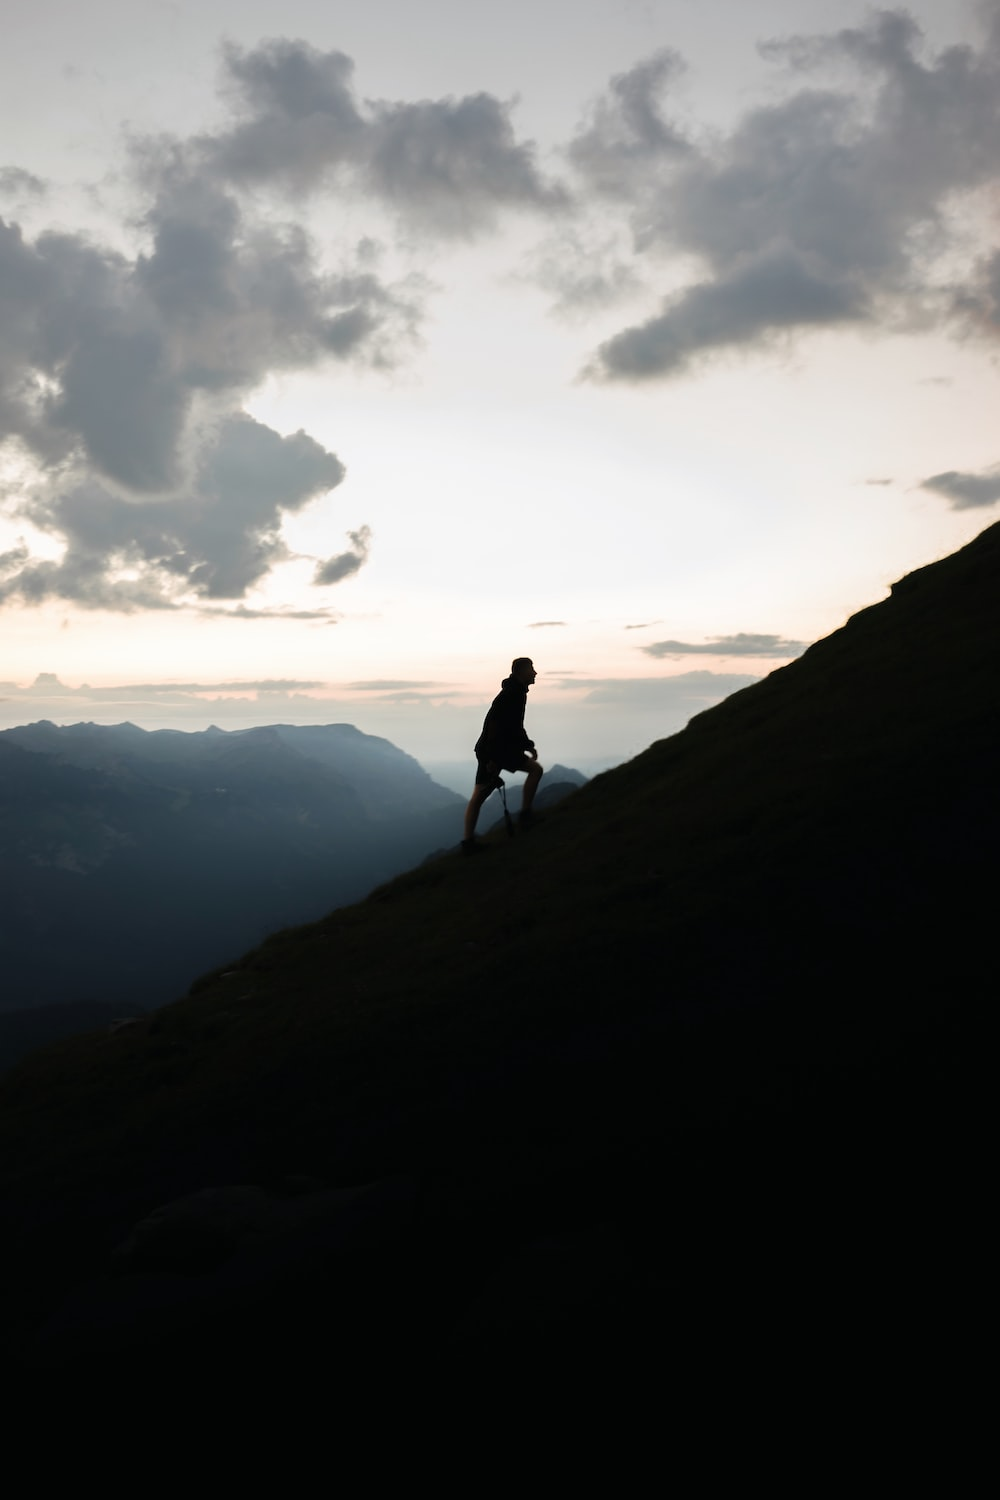 man climbing up the peak under grey cloudy sunset sky